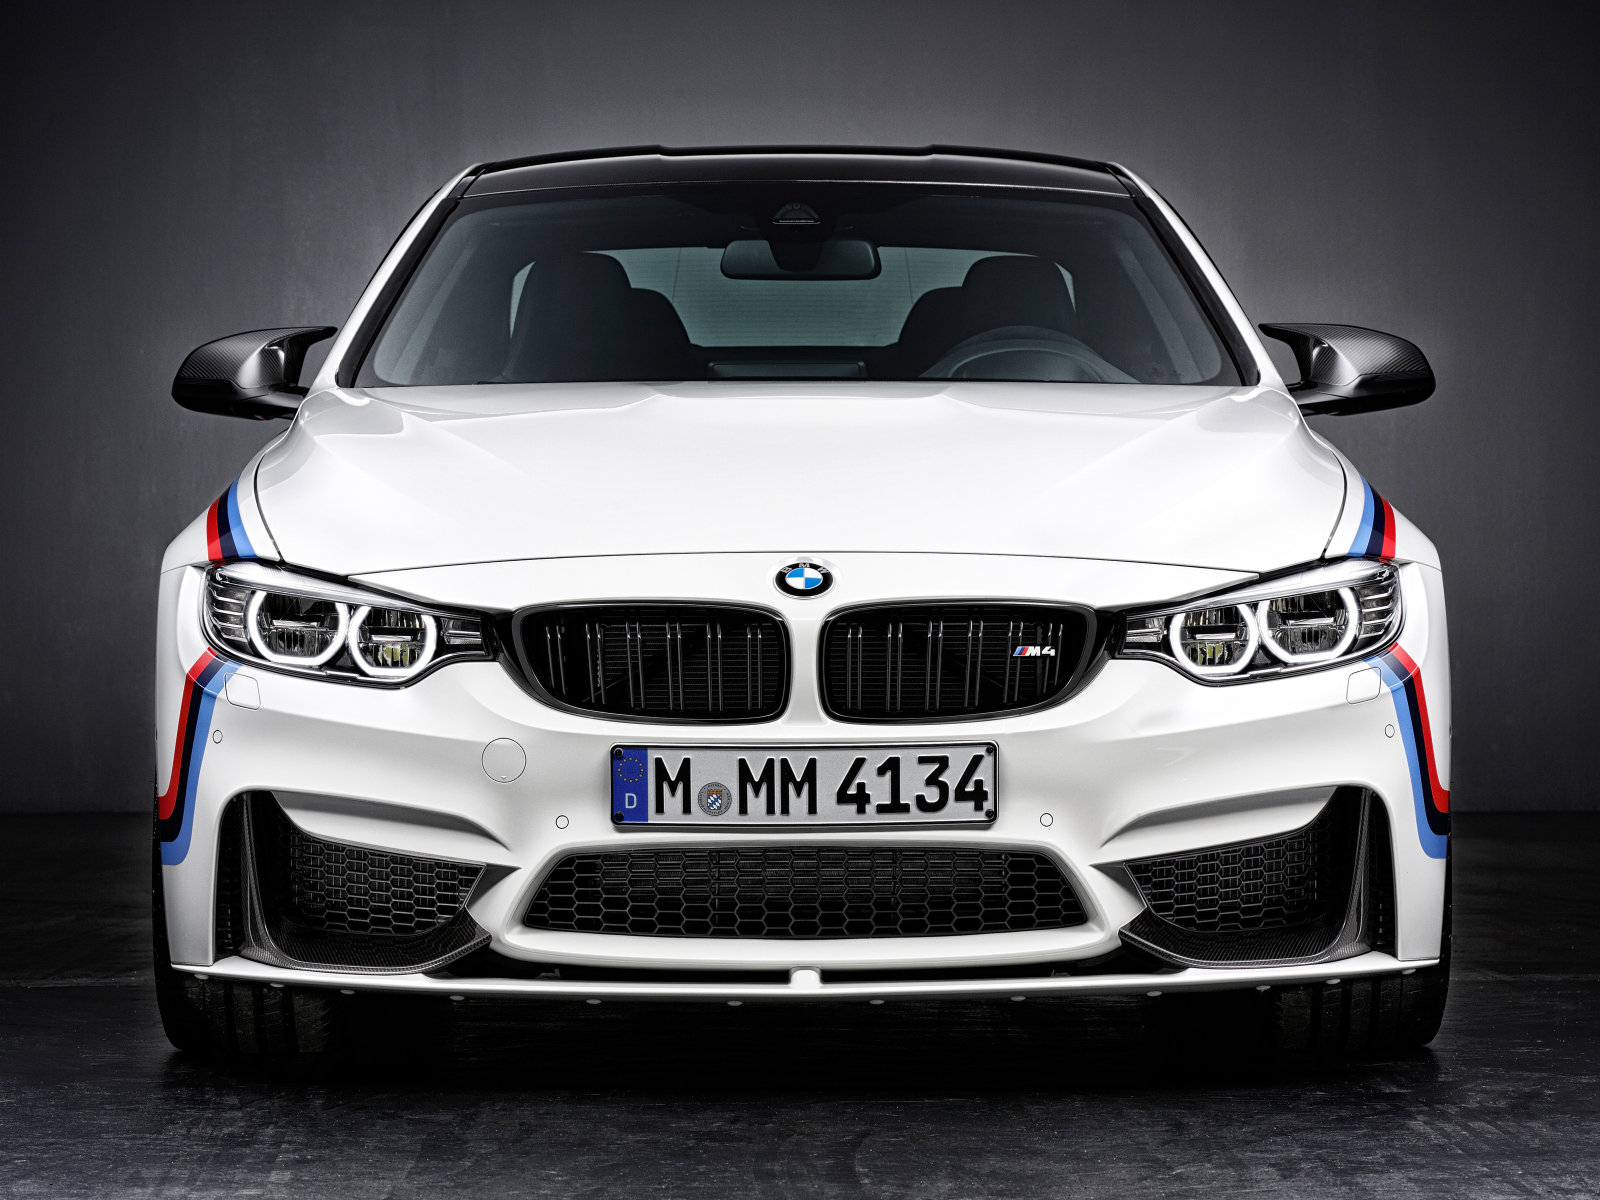 Bmw M4 Performance F82 Pr 233 Par 233 Par M Pour Motorsport